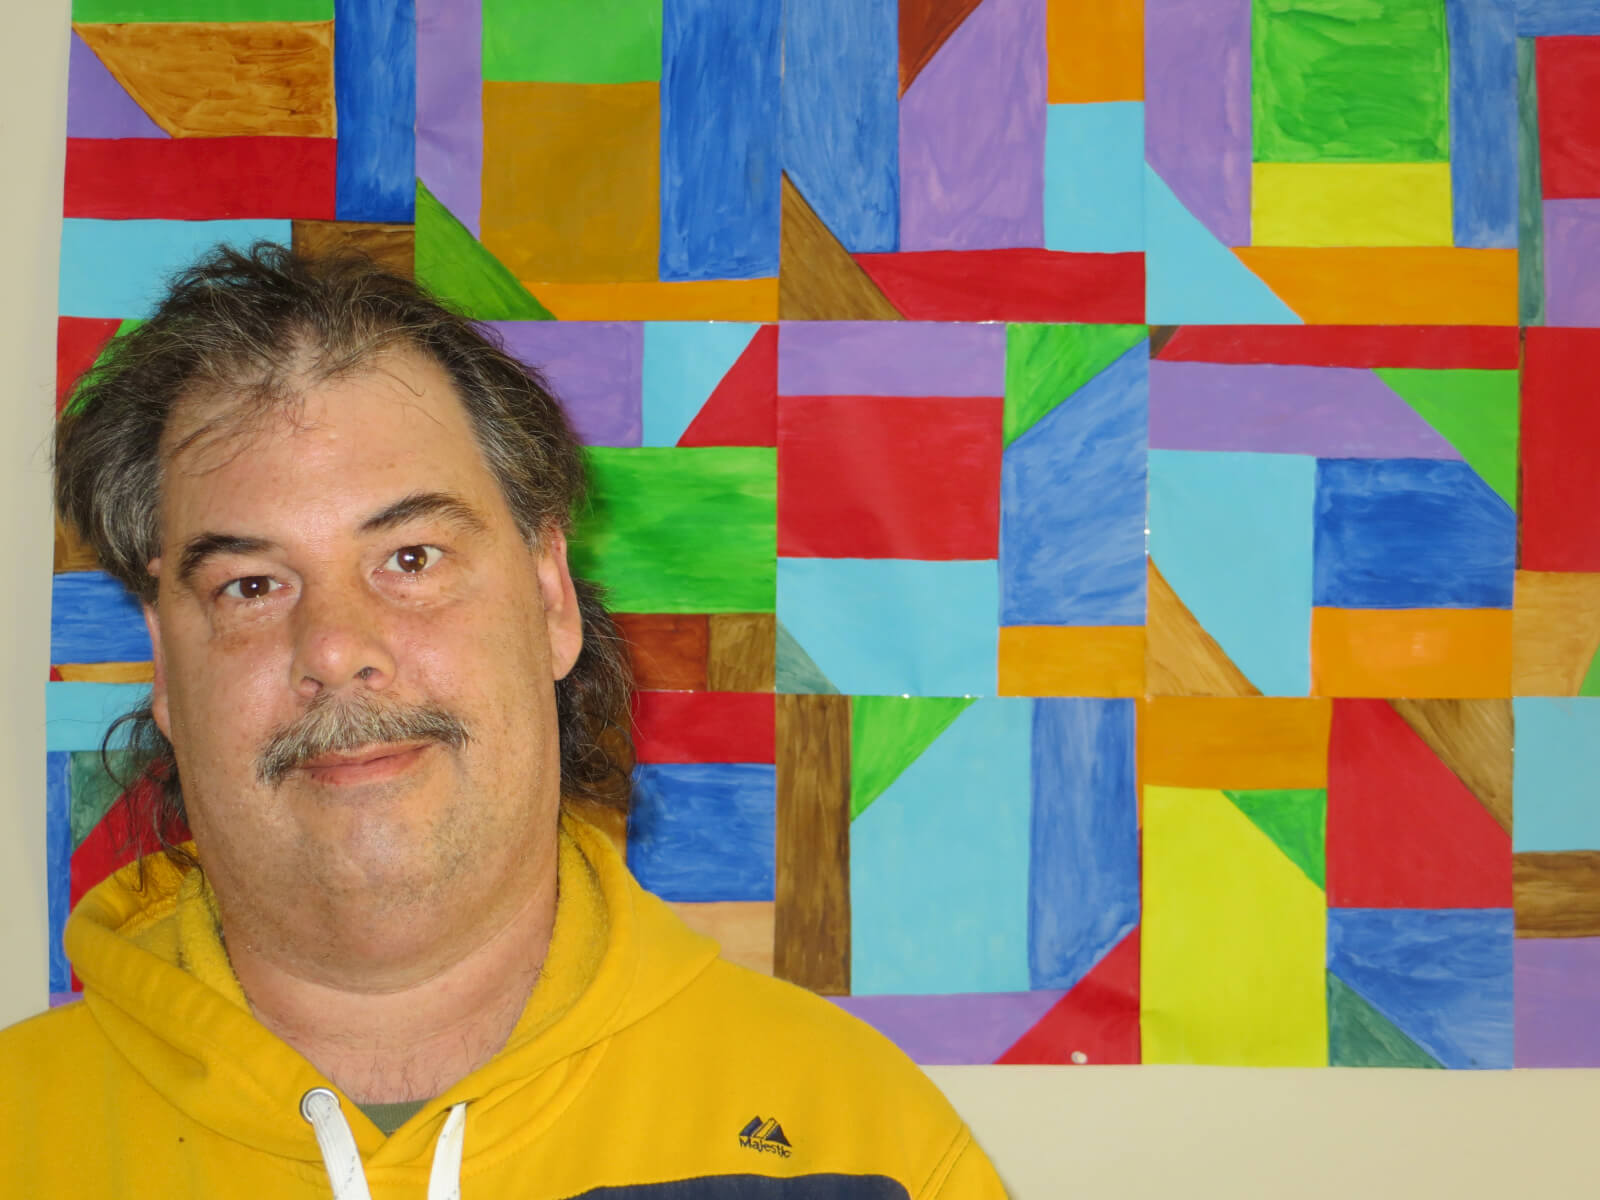 Photo of Peter in front of colorful artwork